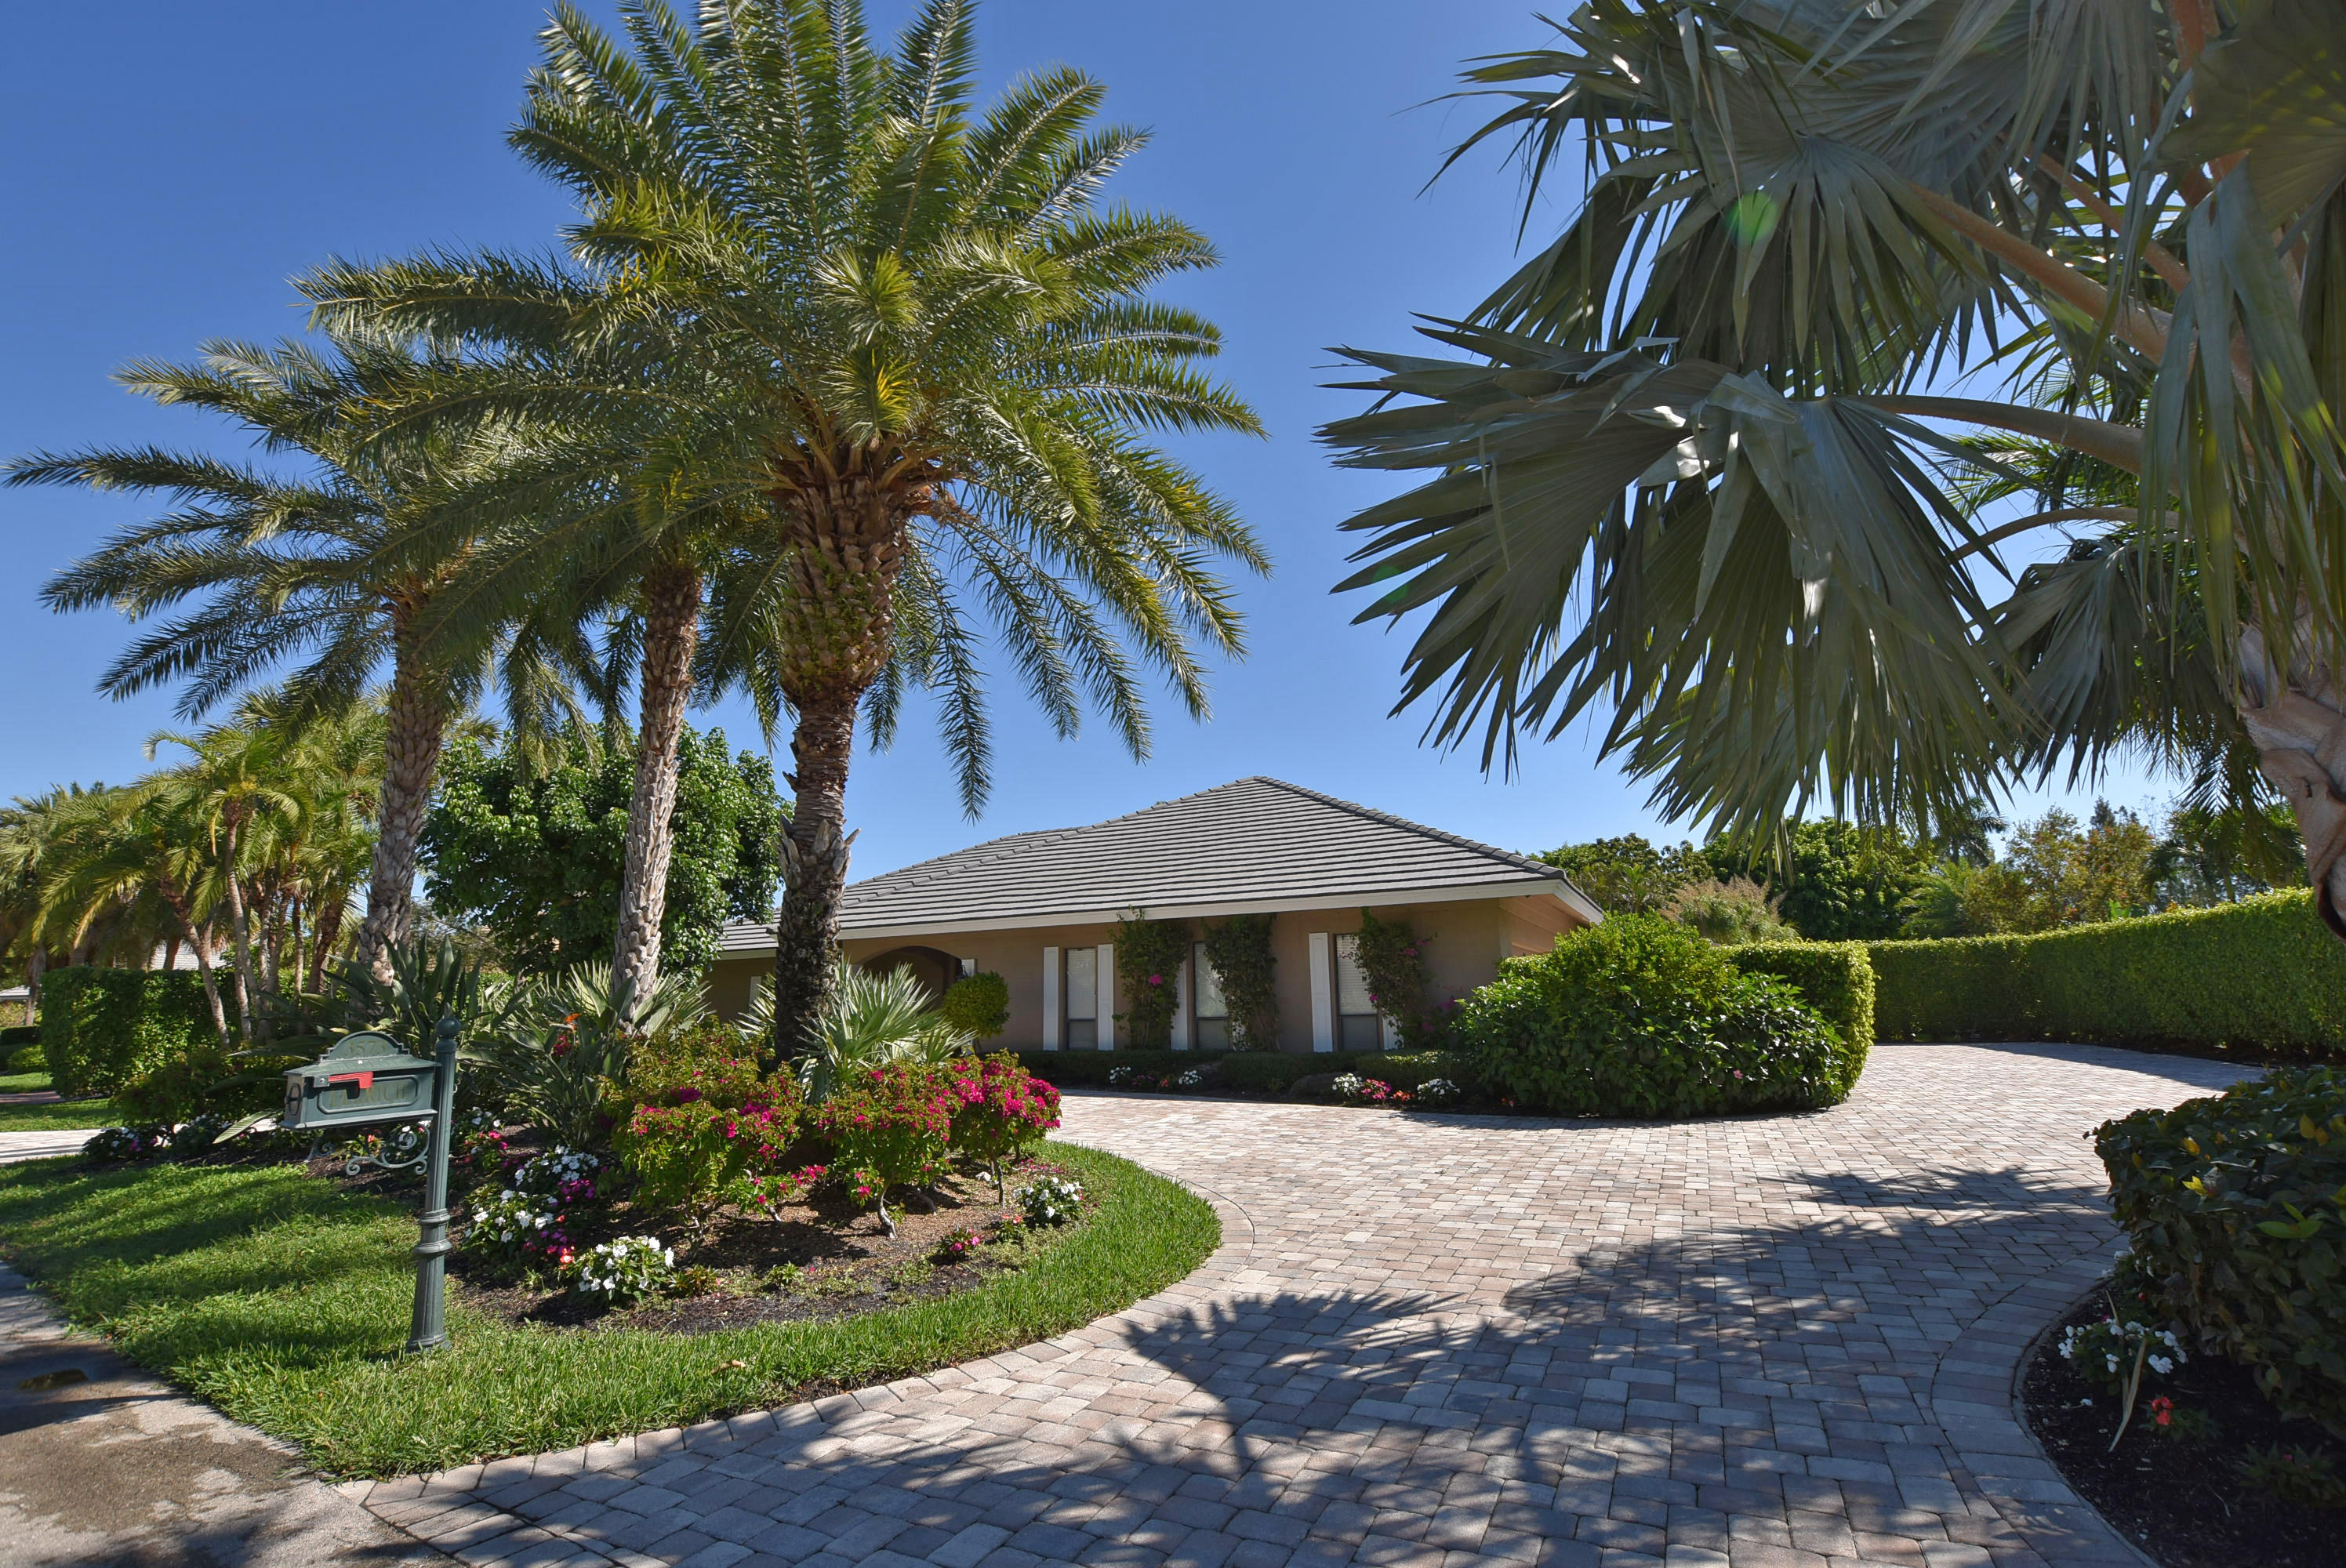 3573 Chinaberry Terrace, Boynton Beach, Florida 33436, 3 Bedrooms Bedrooms, ,4.1 BathroomsBathrooms,Single Family,For Sale,Chinaberry,Chinaberry,RX-10470819